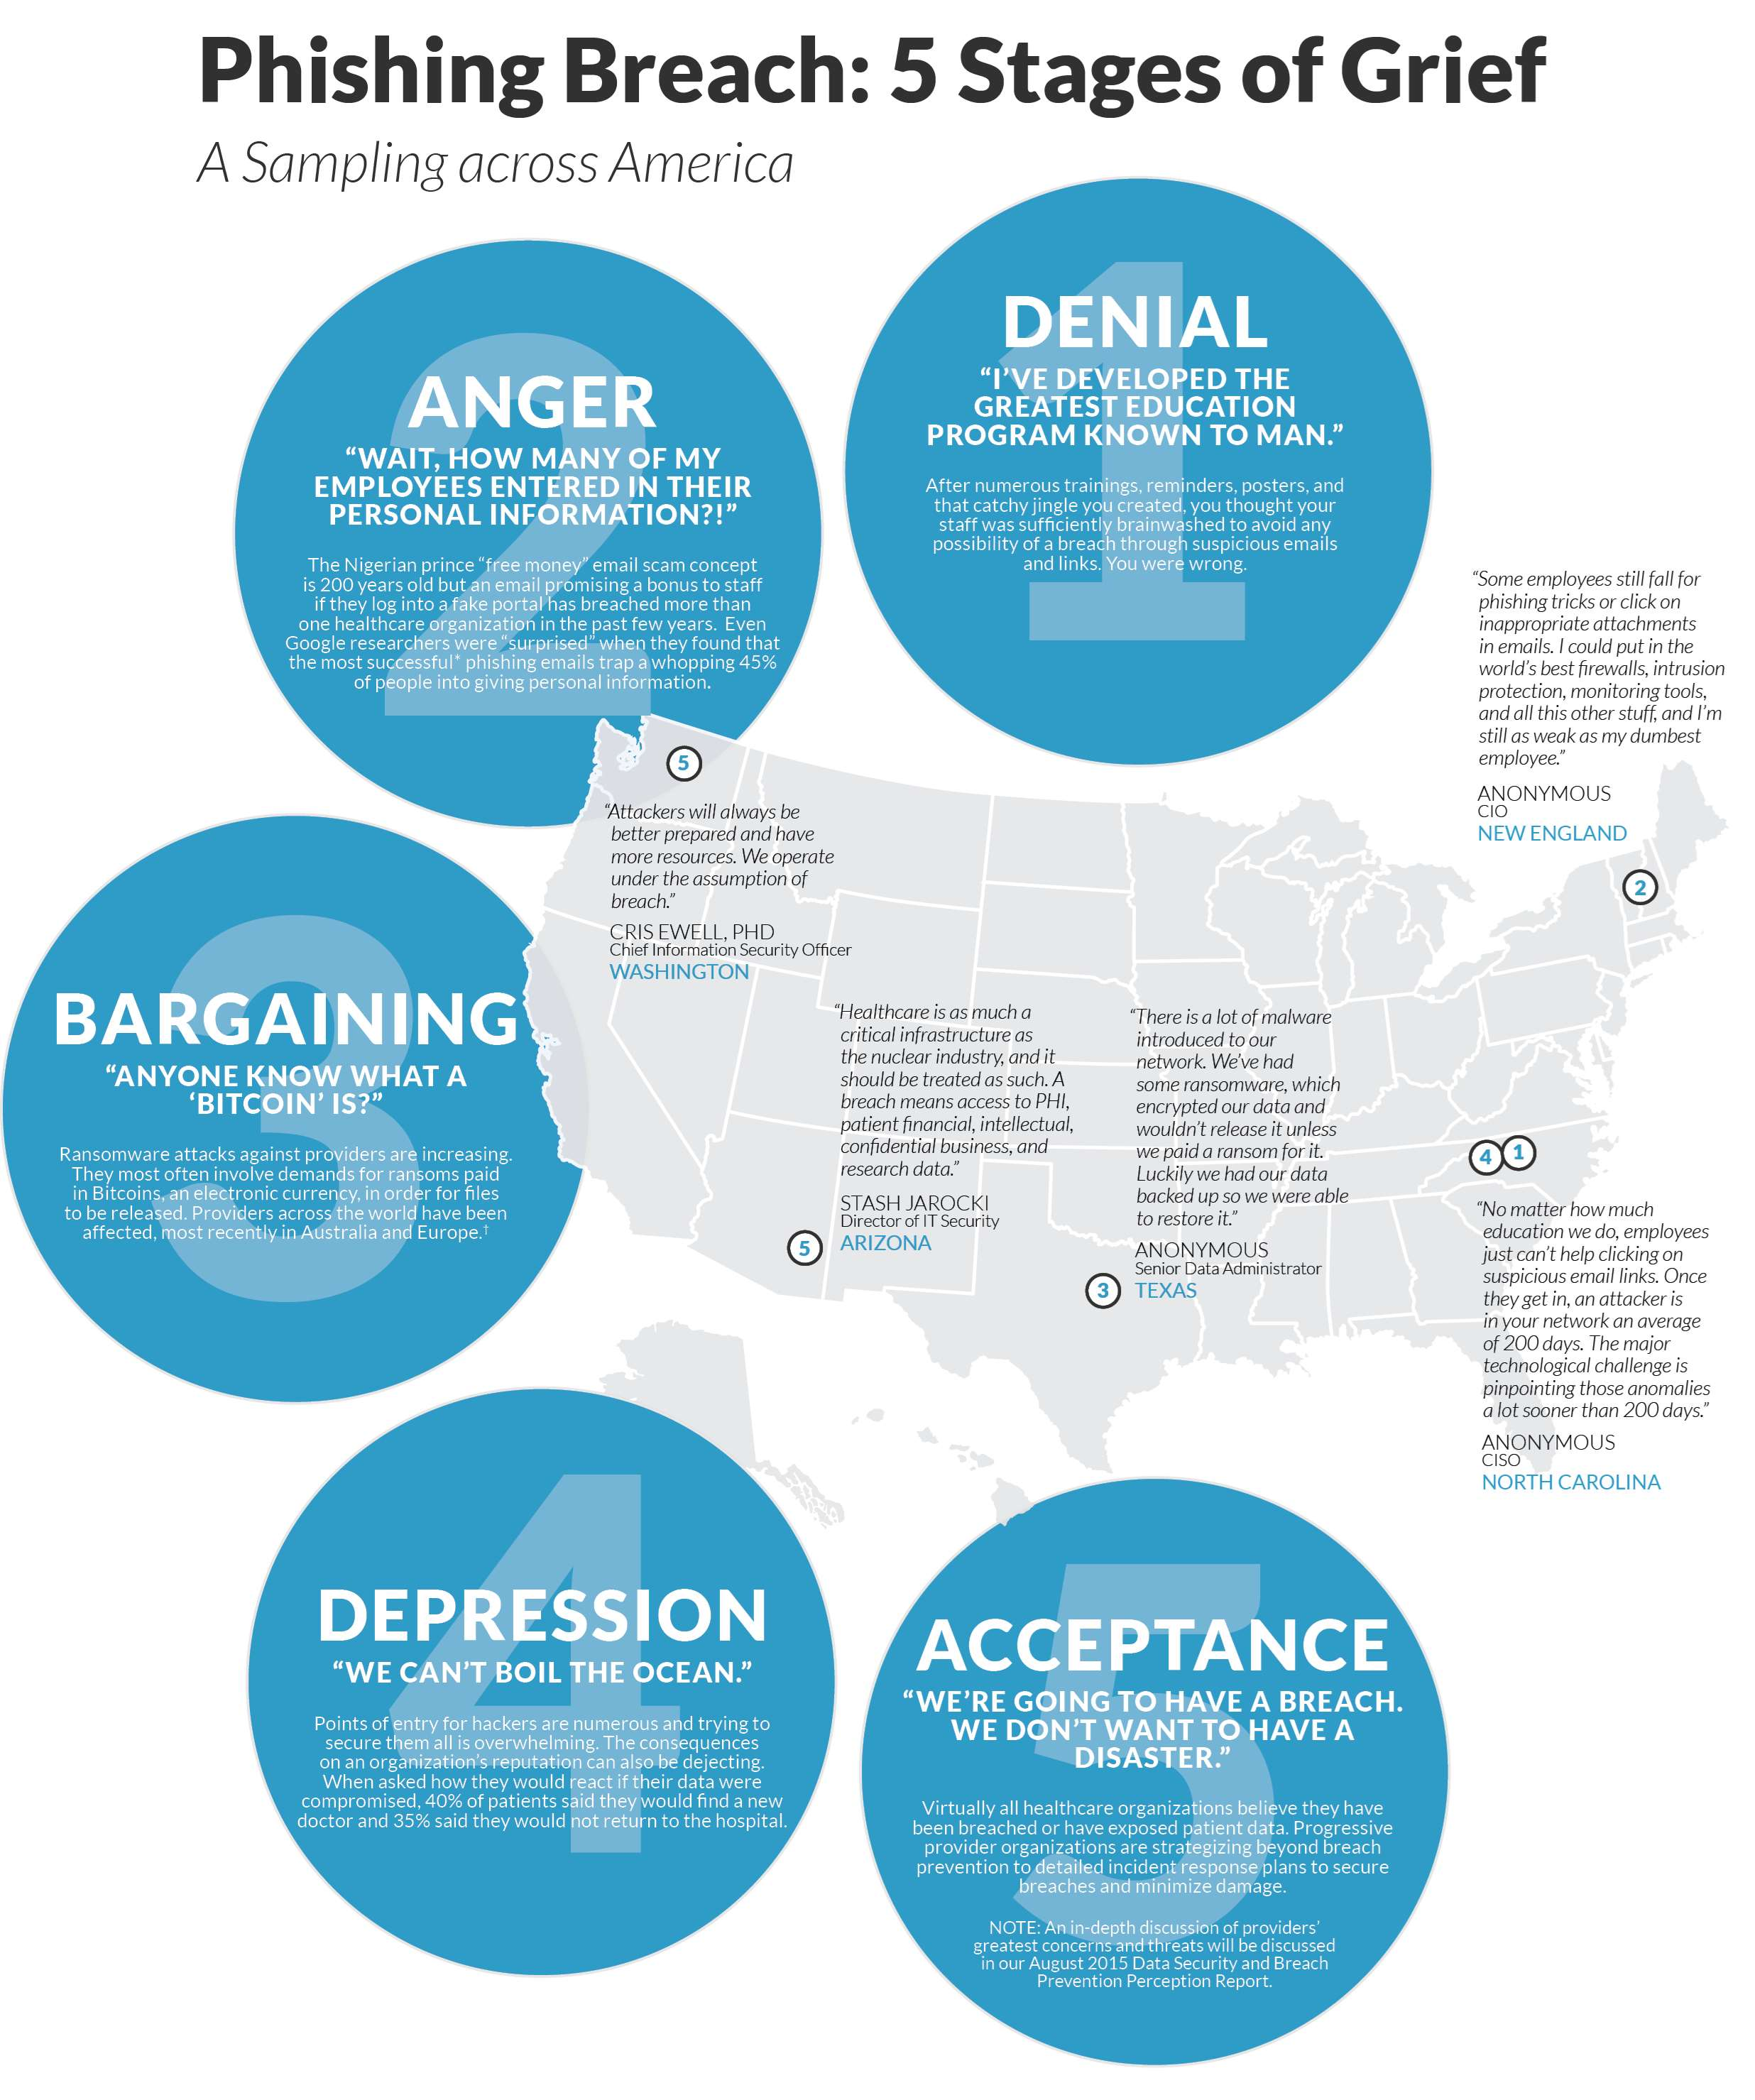 phishing breach 5 stages of grief